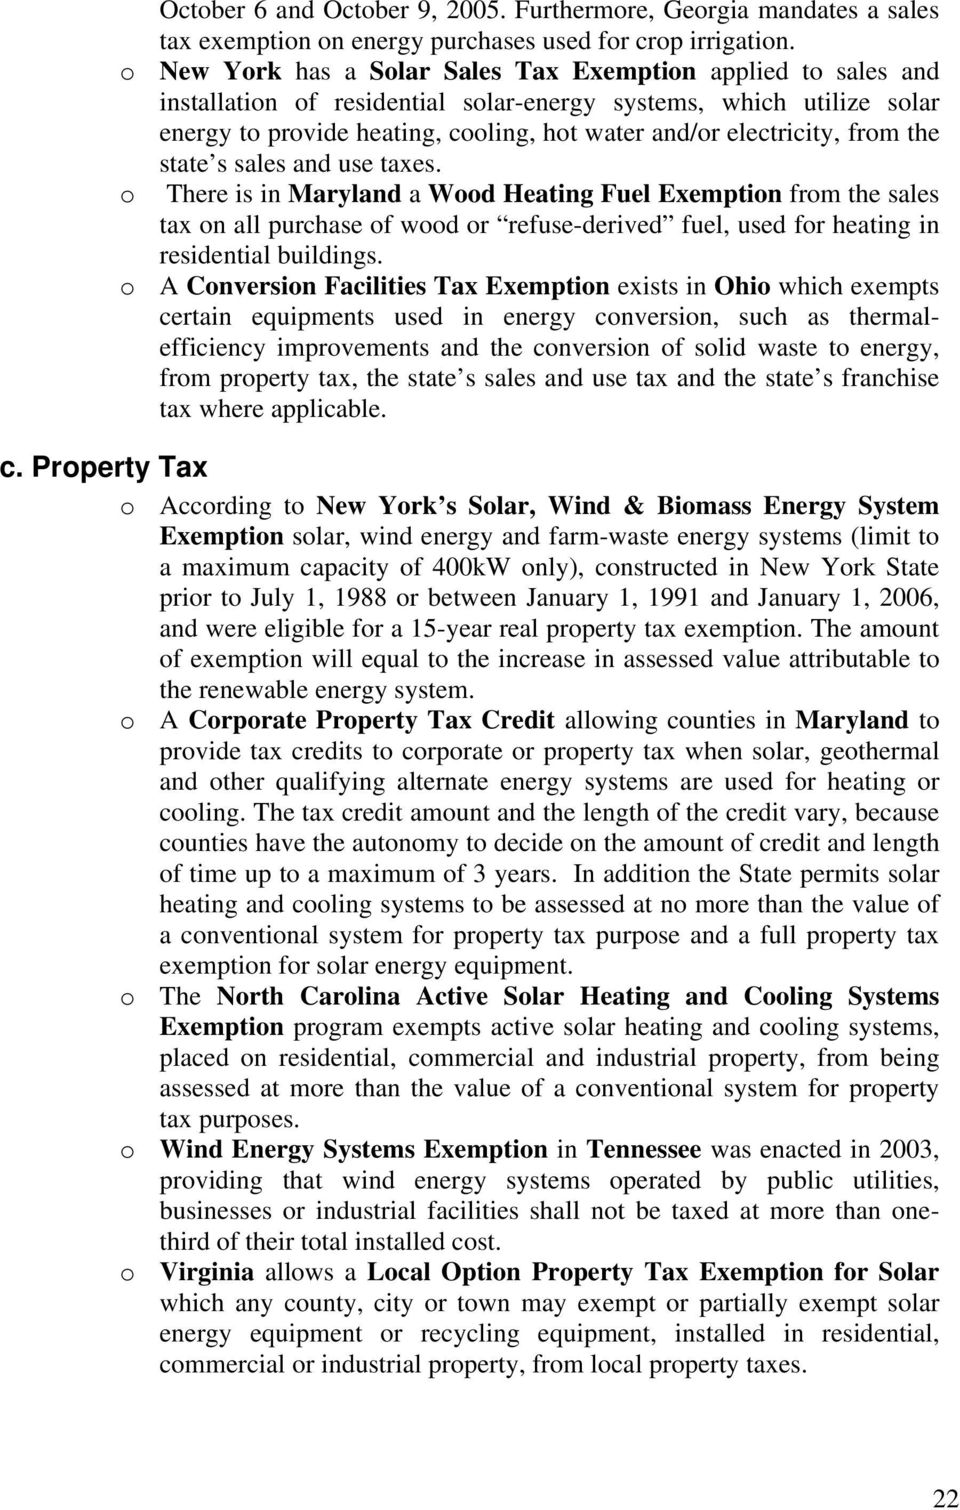 from the state s sales and use taxes. o There is in Maryland a Wood Heating Fuel Exemption from the sales tax on all purchase of wood or refuse-derived fuel, used for heating in residential buildings.